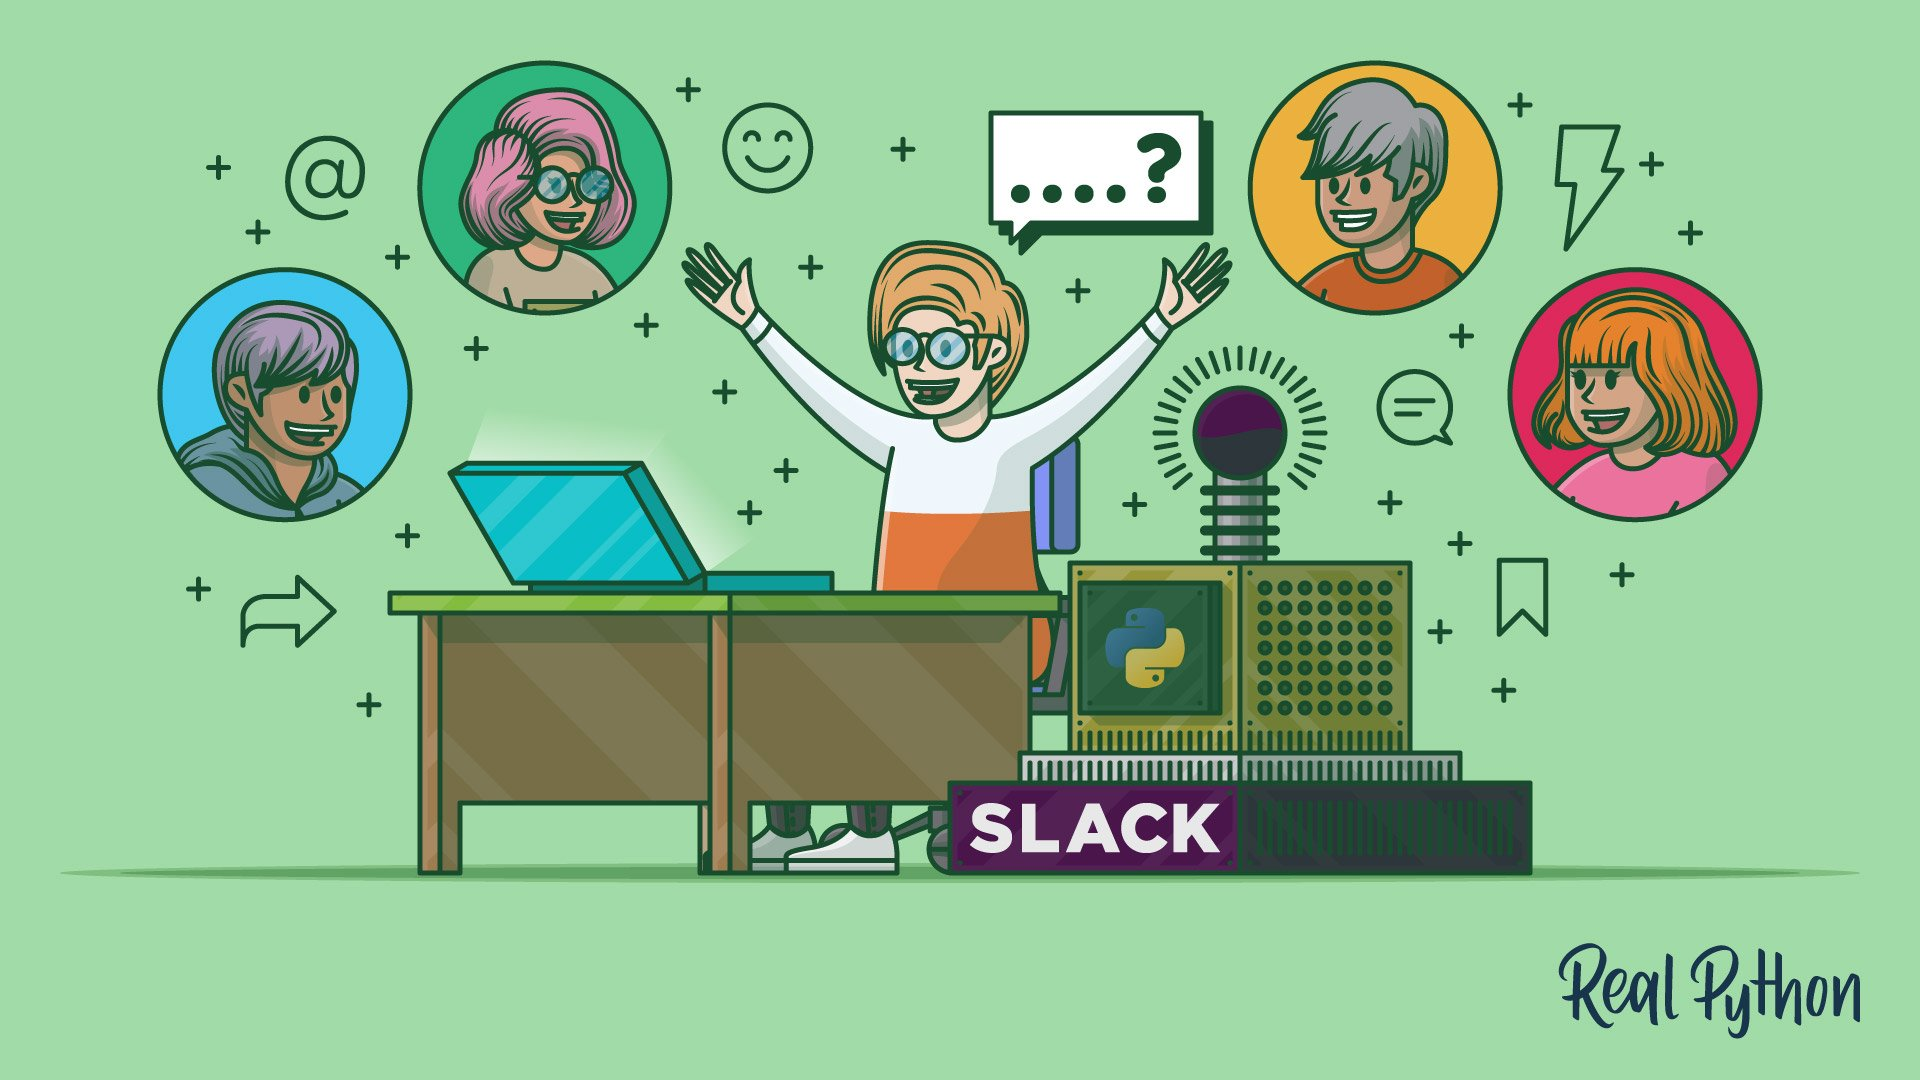 Level Up Your Skills With the Real Python Slack Community